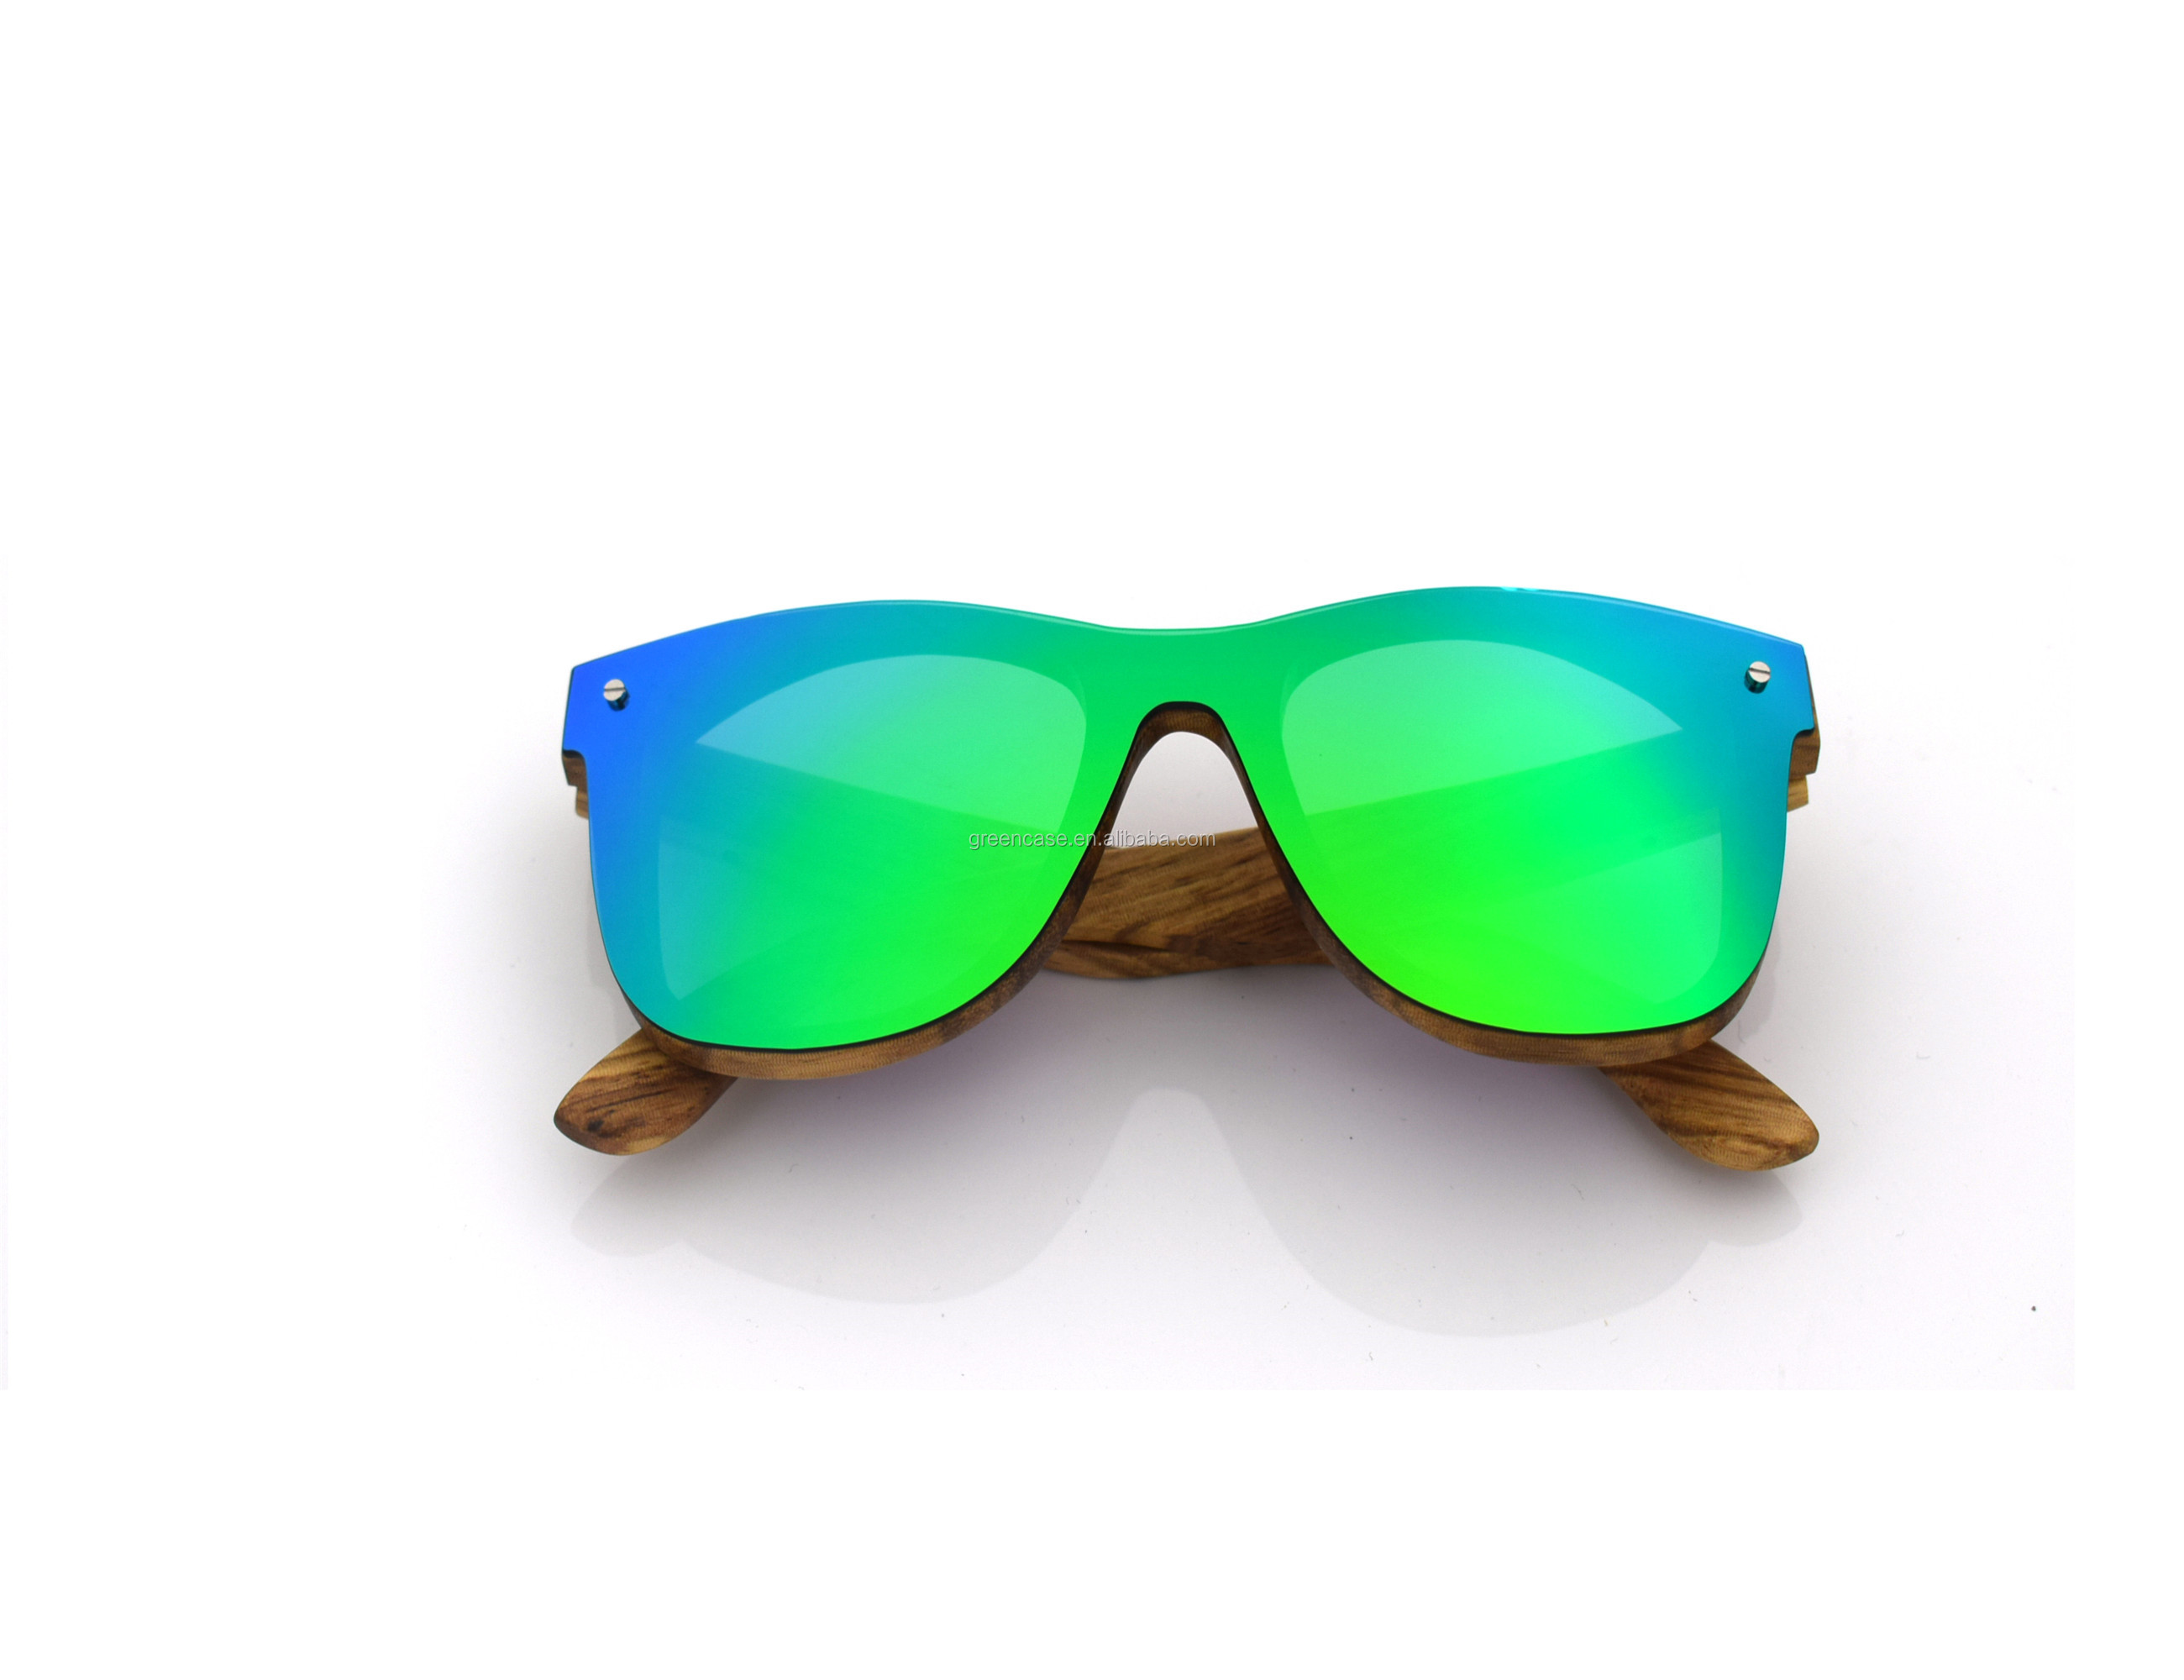 3a8c94ef01a6 China Designer Wood Sunglass, China Designer Wood Sunglass Manufacturers  and Suppliers on Alibaba.com